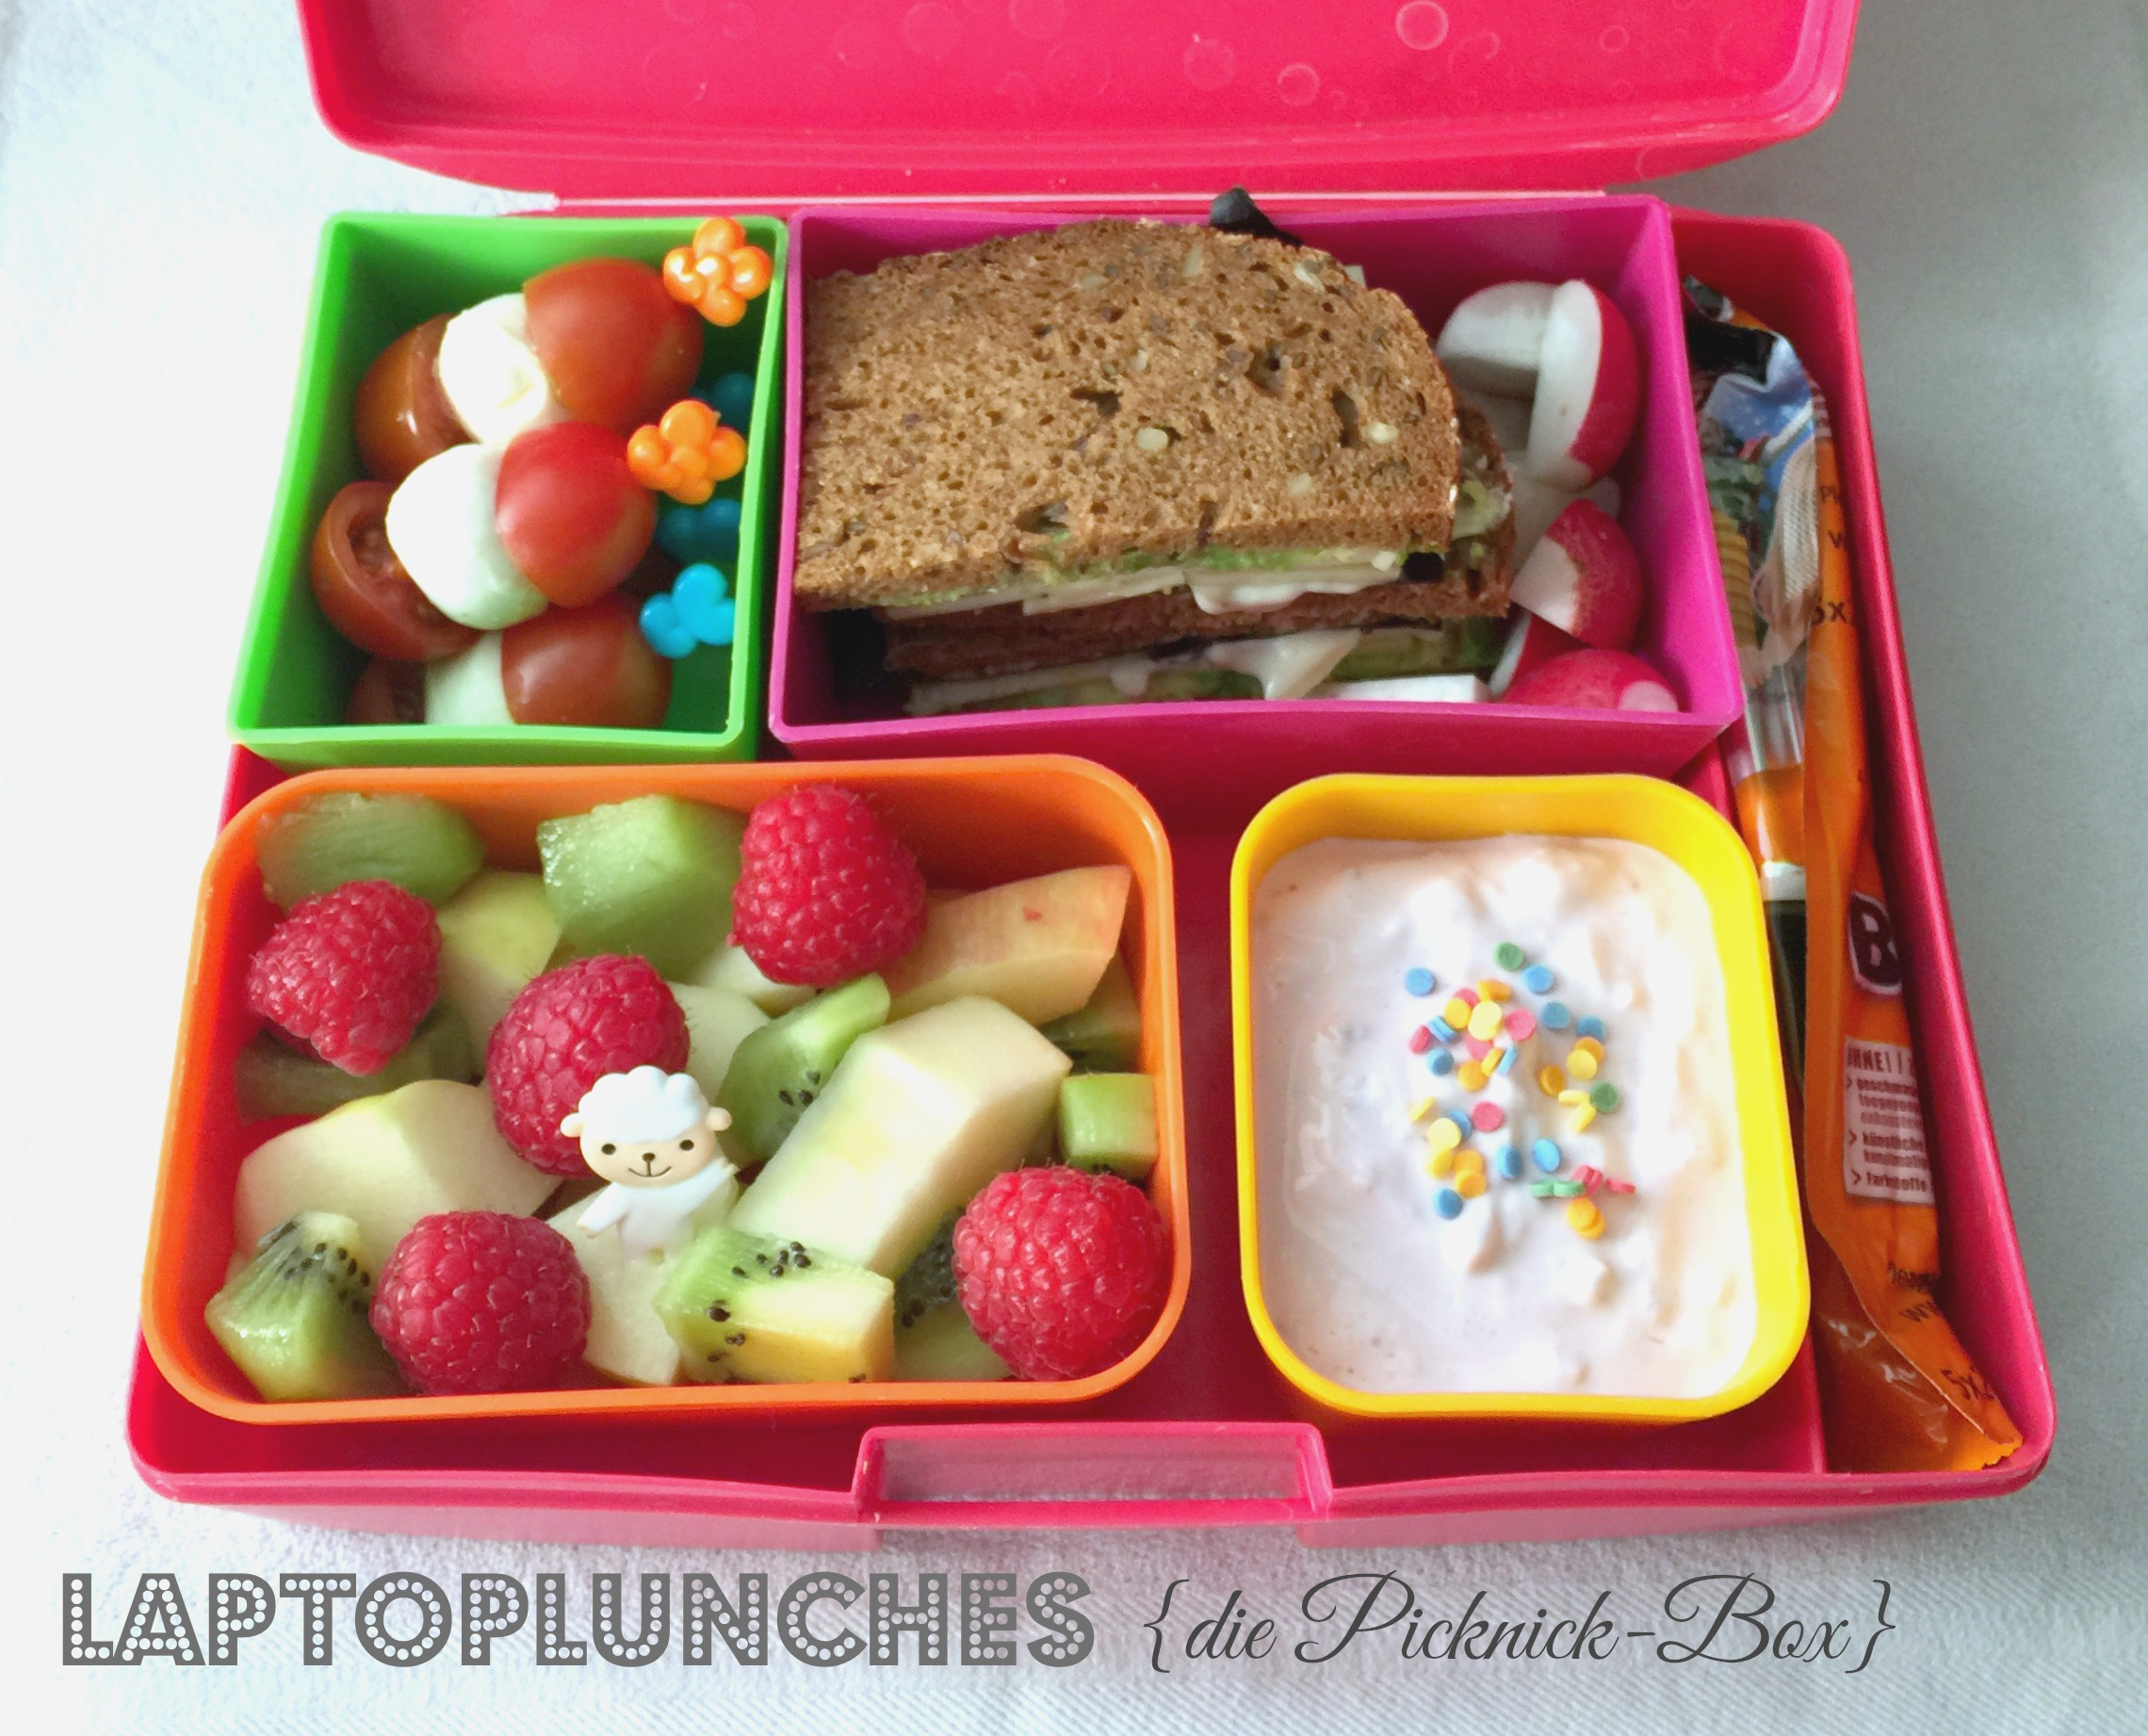 Laptoplunches, Bentobox, Lunchboxinspiration, Lunchboxdiary, Picknick